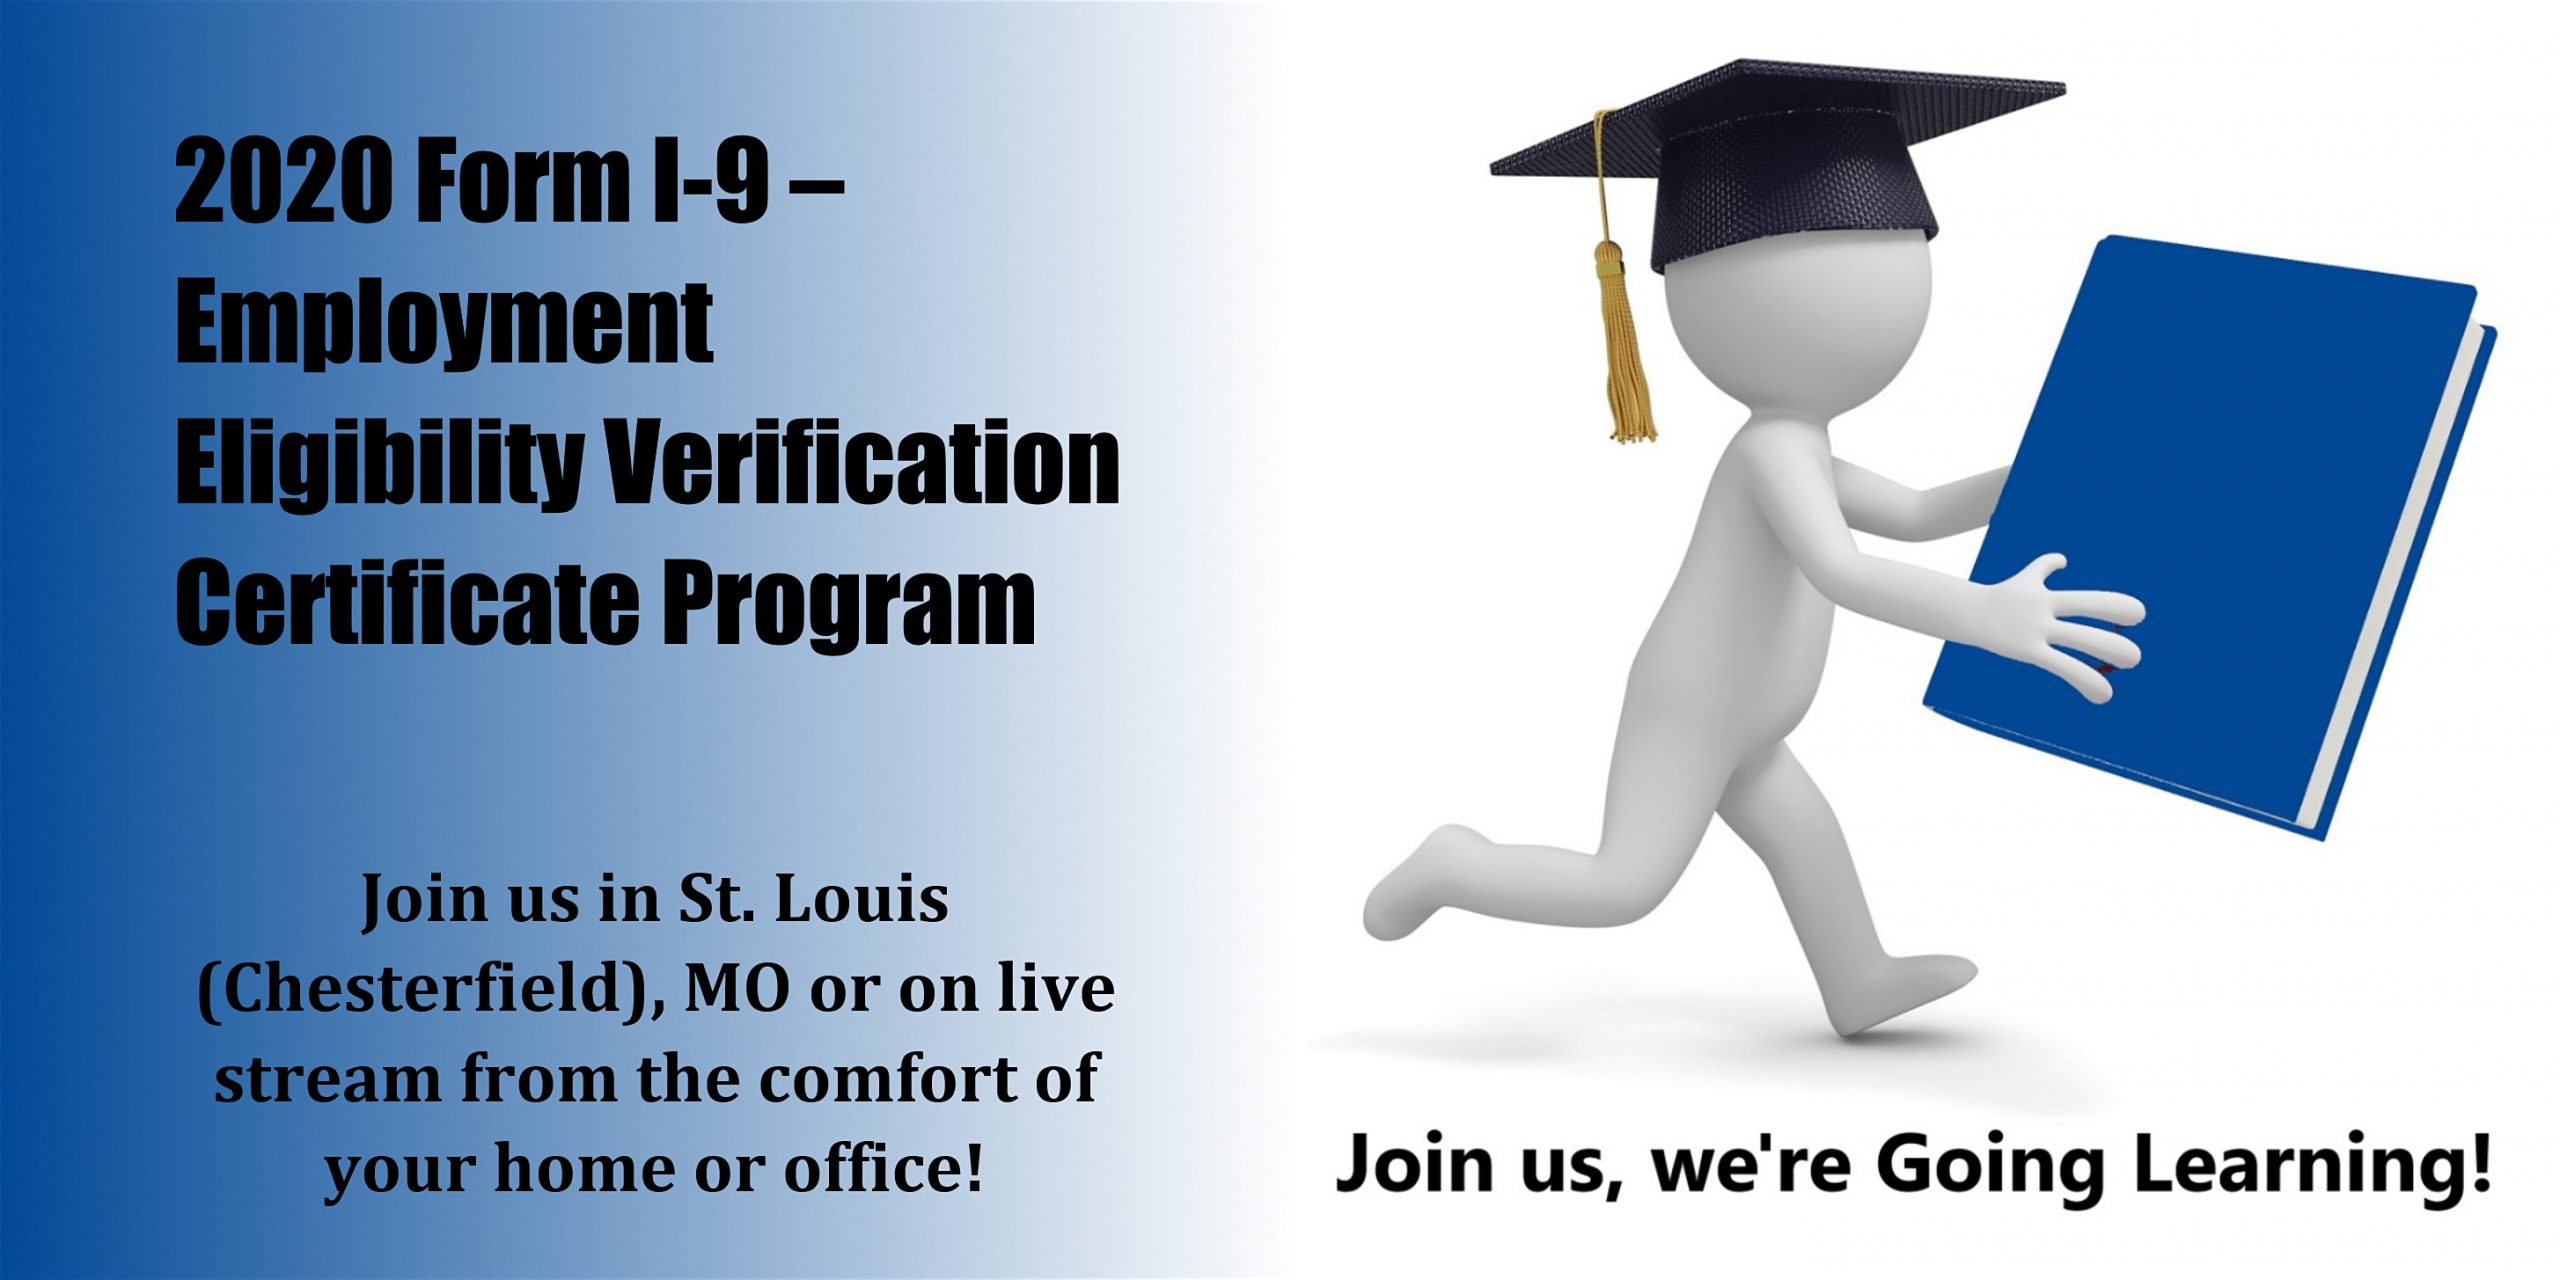 2020 Form I-9 – Employment Eligibility Verification Certificate Program  (Starts January 27, 2020 In St. Louis, Mo) - Going Learning®